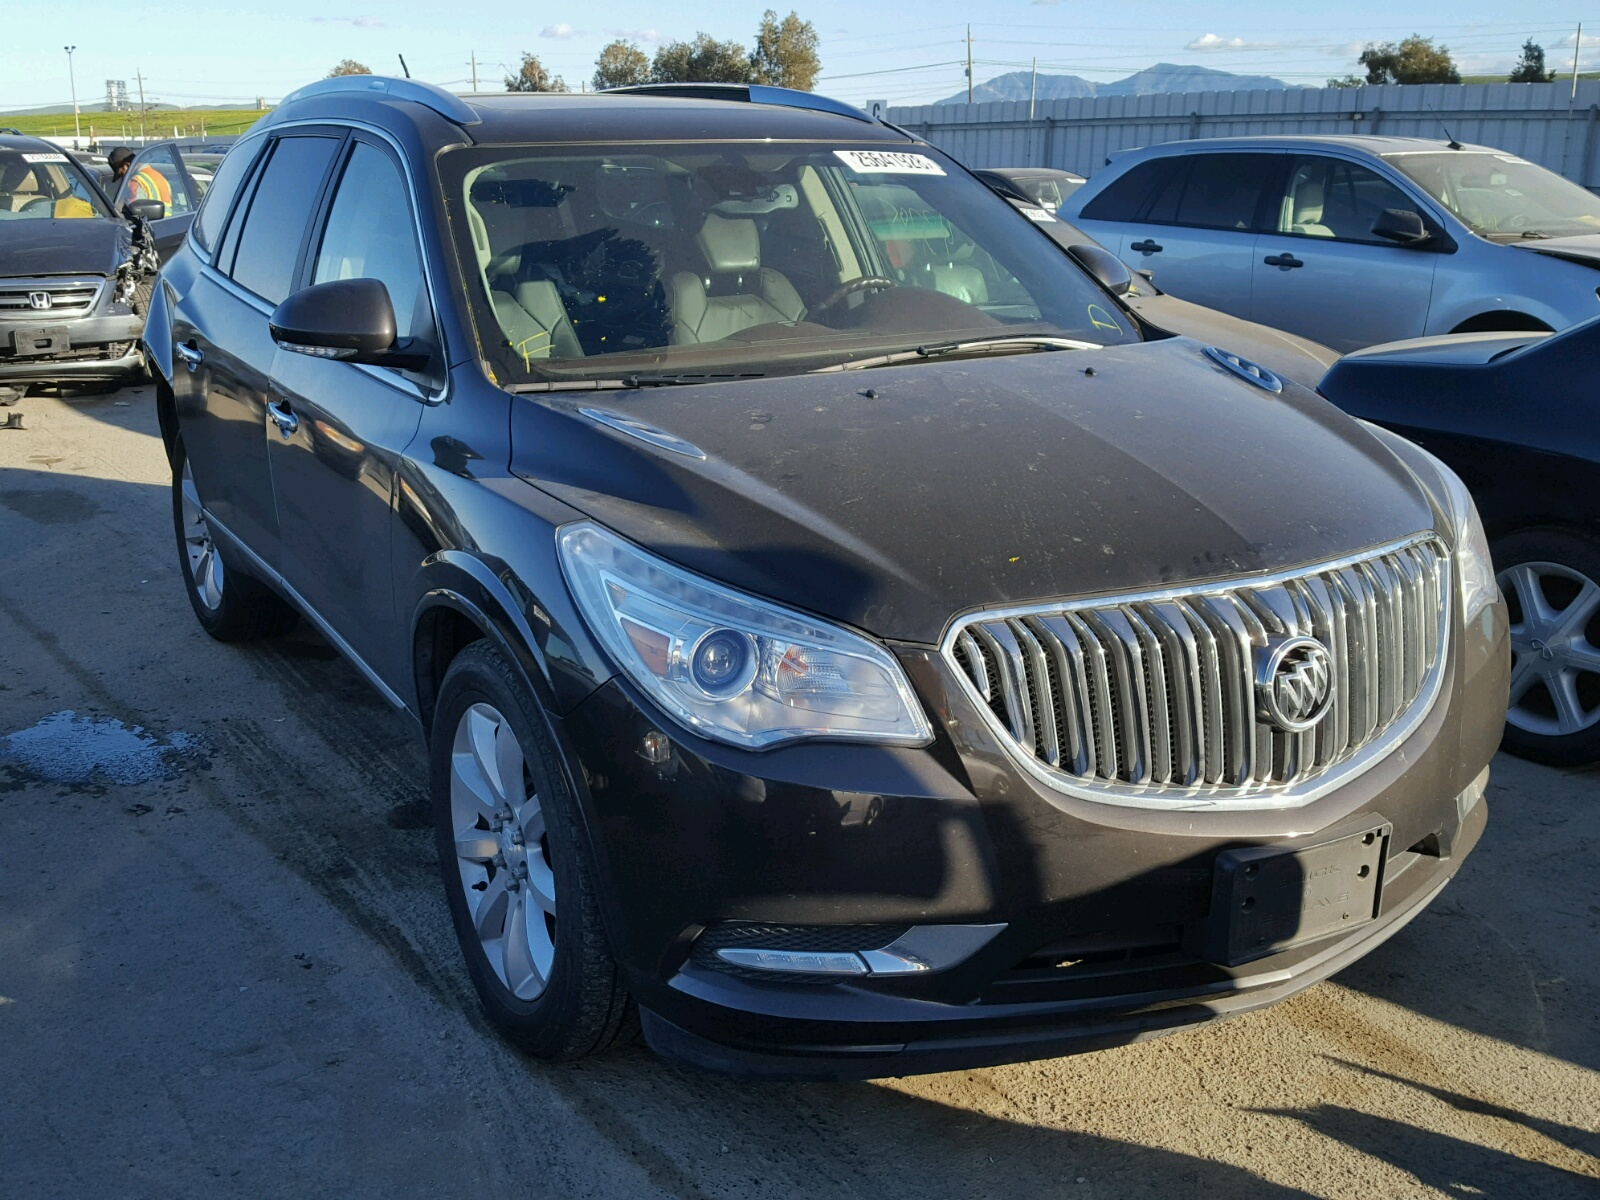 exterior new car buick enclave size luxury features used reviews mov mid suv